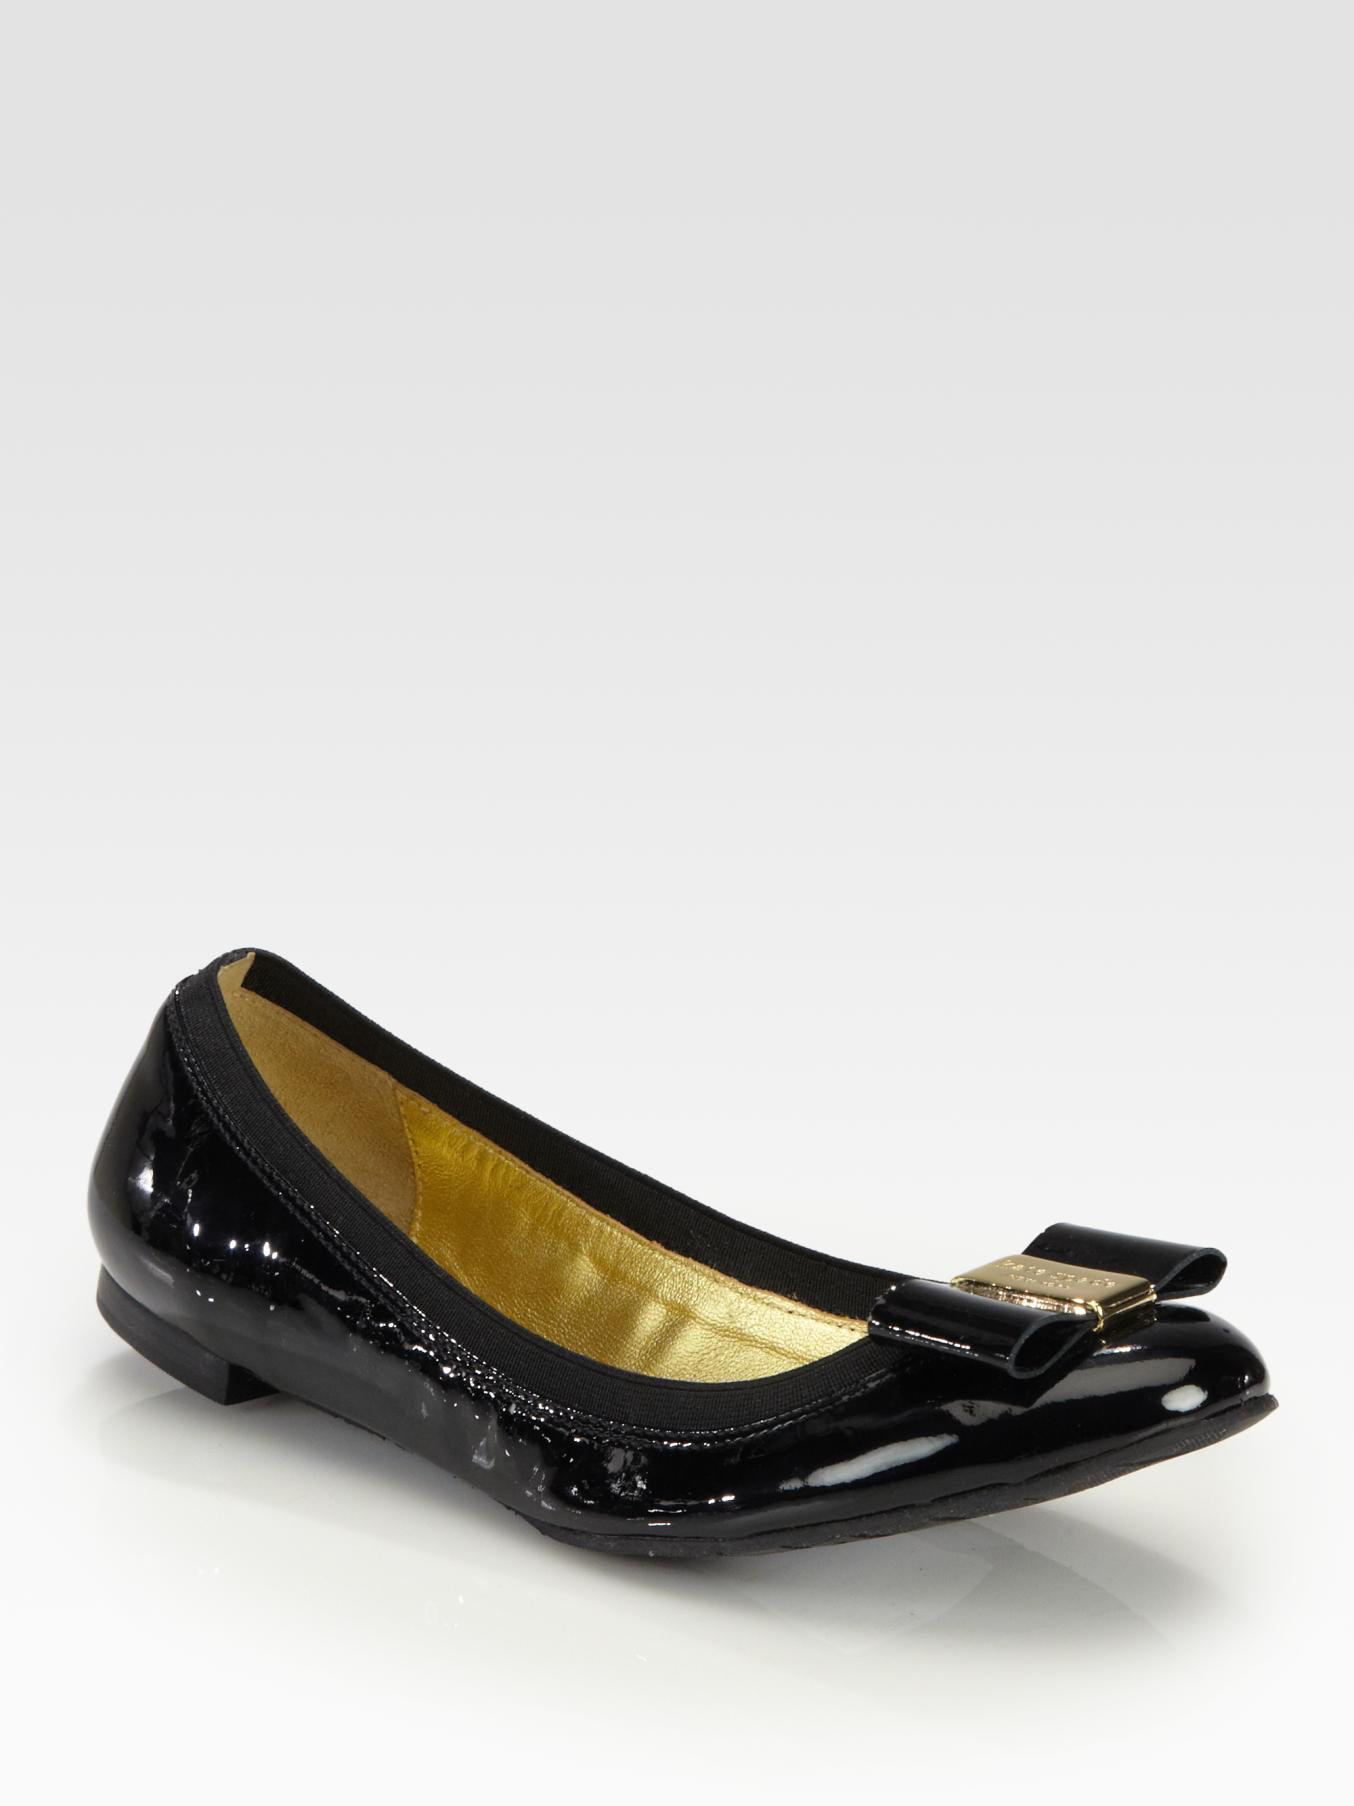 Kate spade new york tock patent leather bow ballet flats for Kate spade new york flats